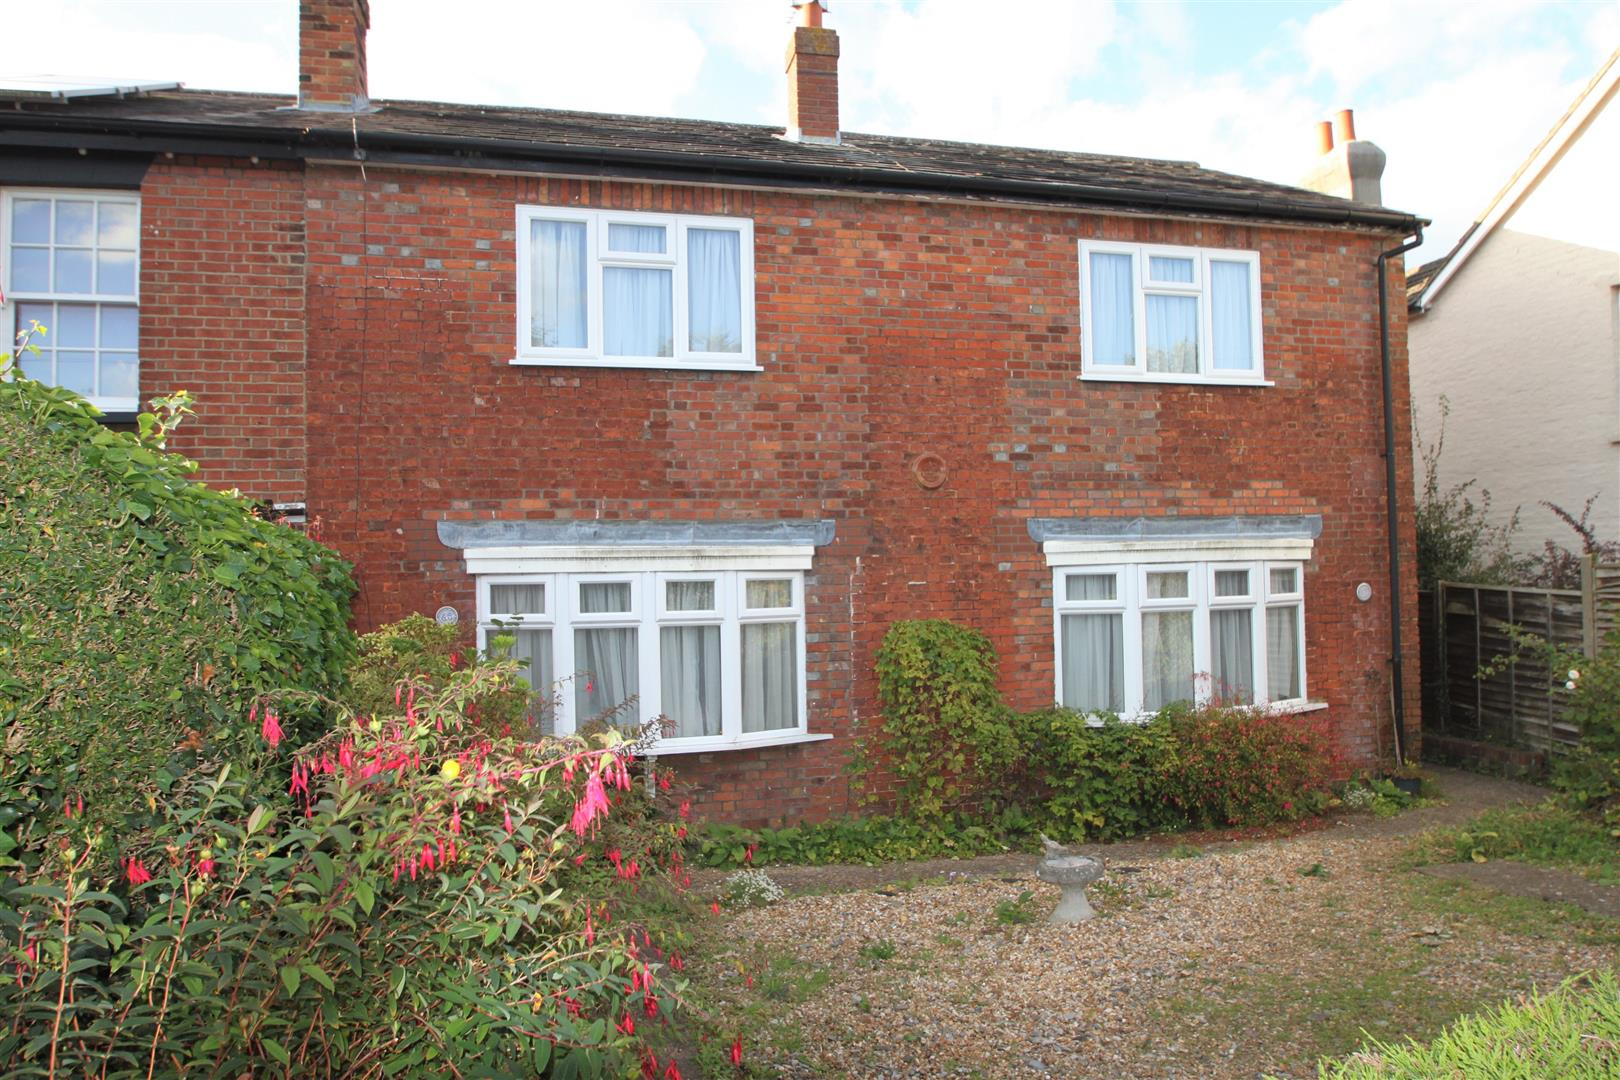 4 Bedrooms End Of Terrace House for sale in Hartslands Road, Sevenoaks